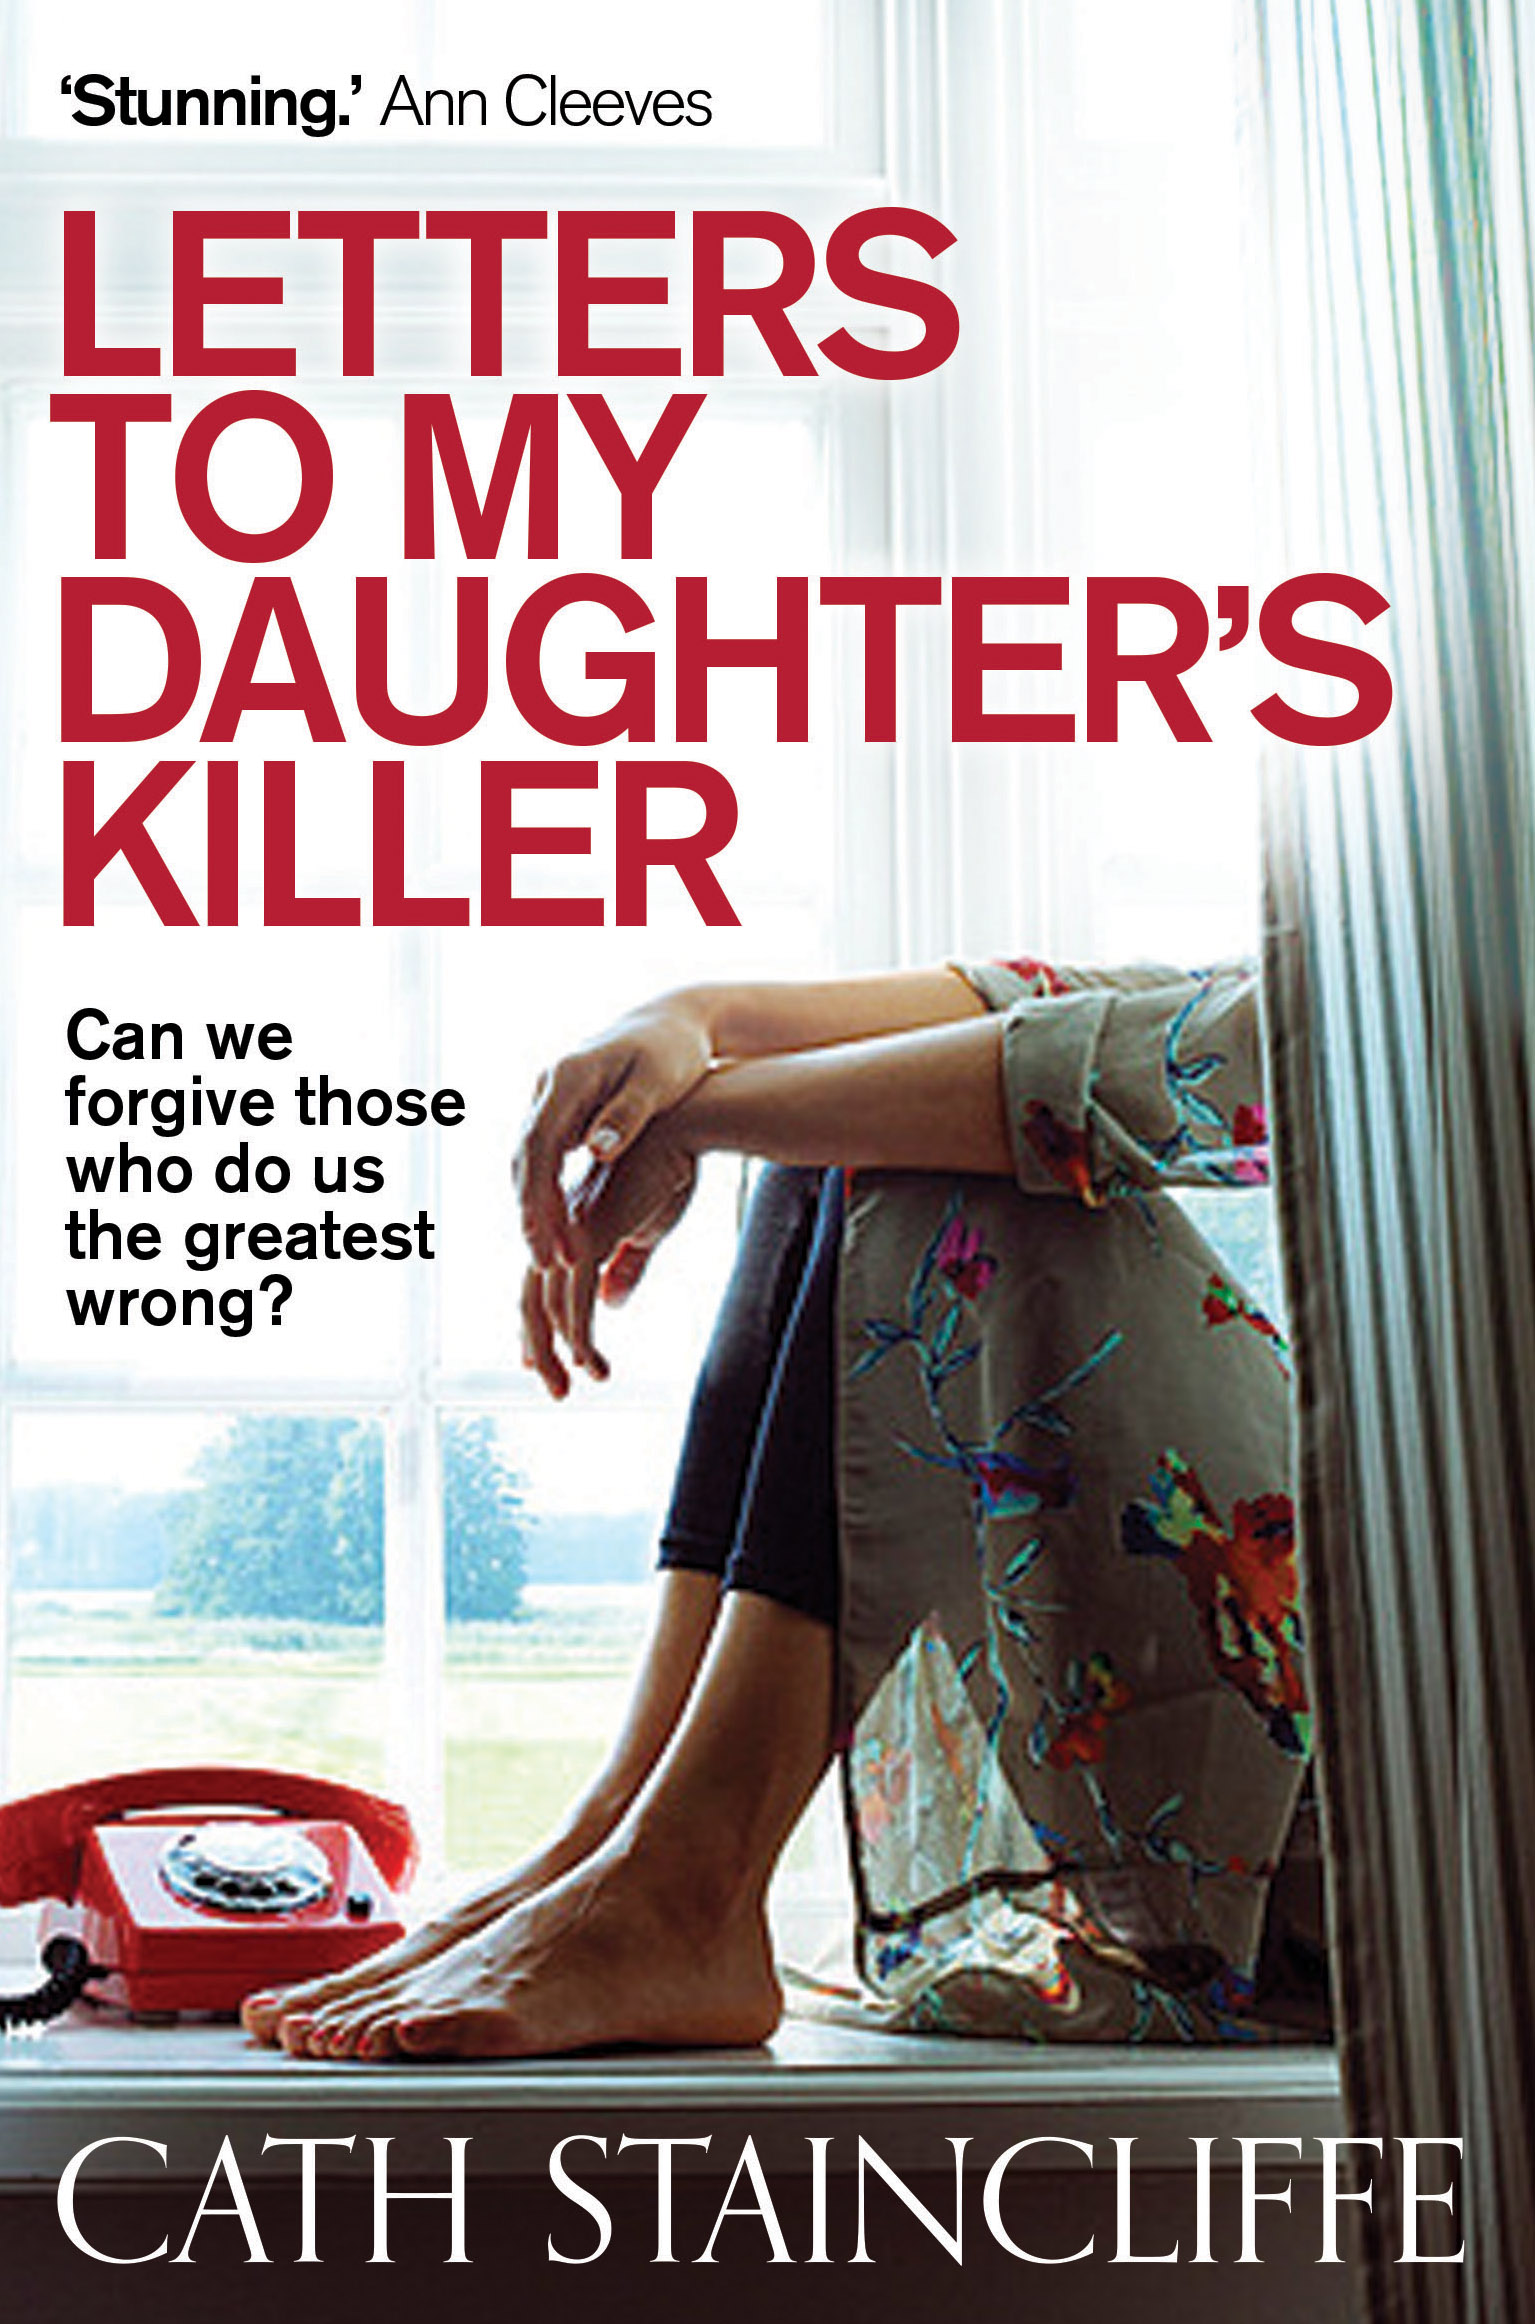 Staincliffe Letters to my Daughters Killer.jpg